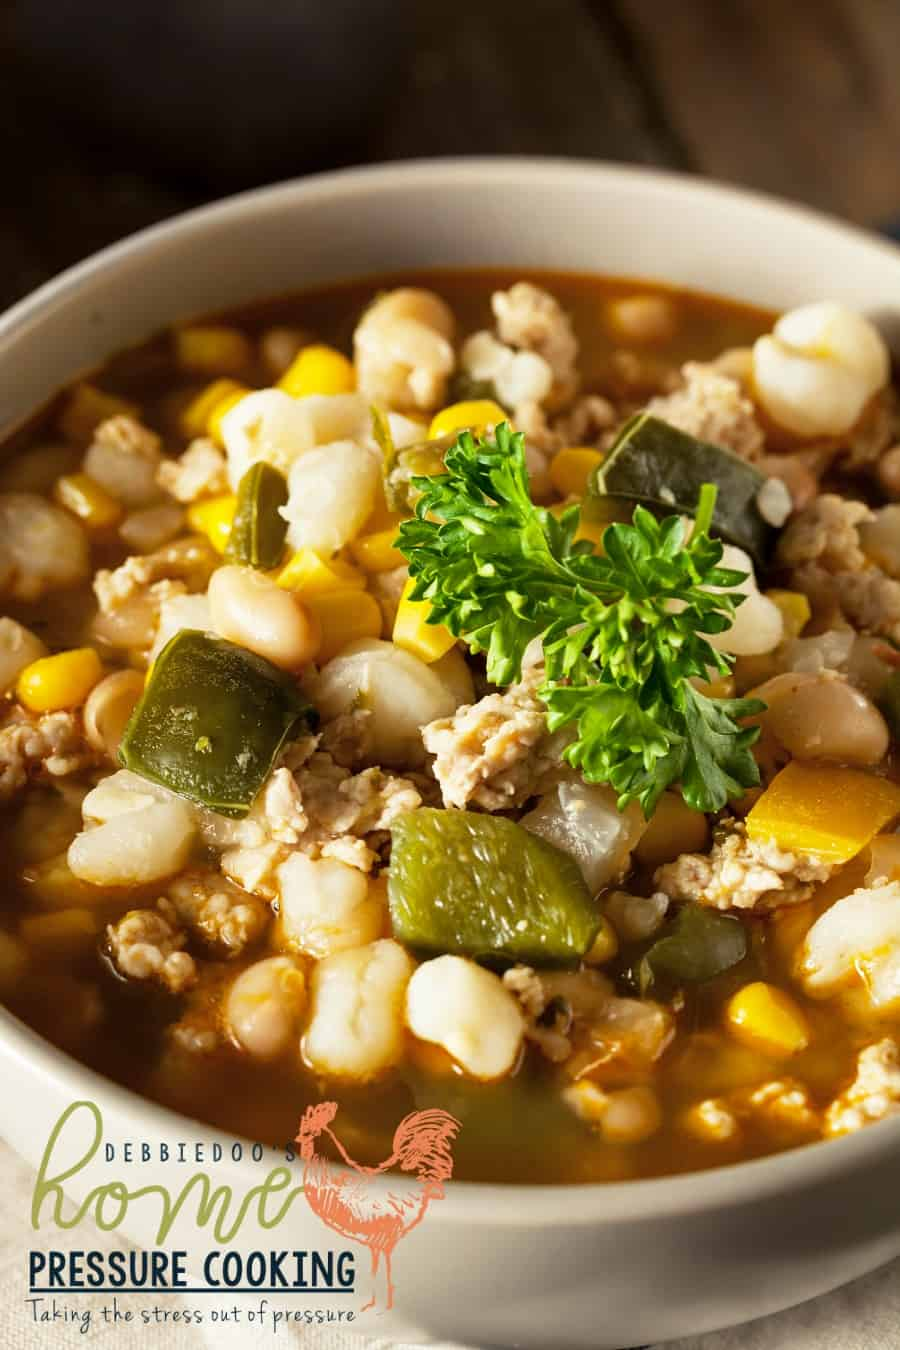 How To Make White Bean Chicken Chili In The Pressure Cooker Home Pressure Cooking